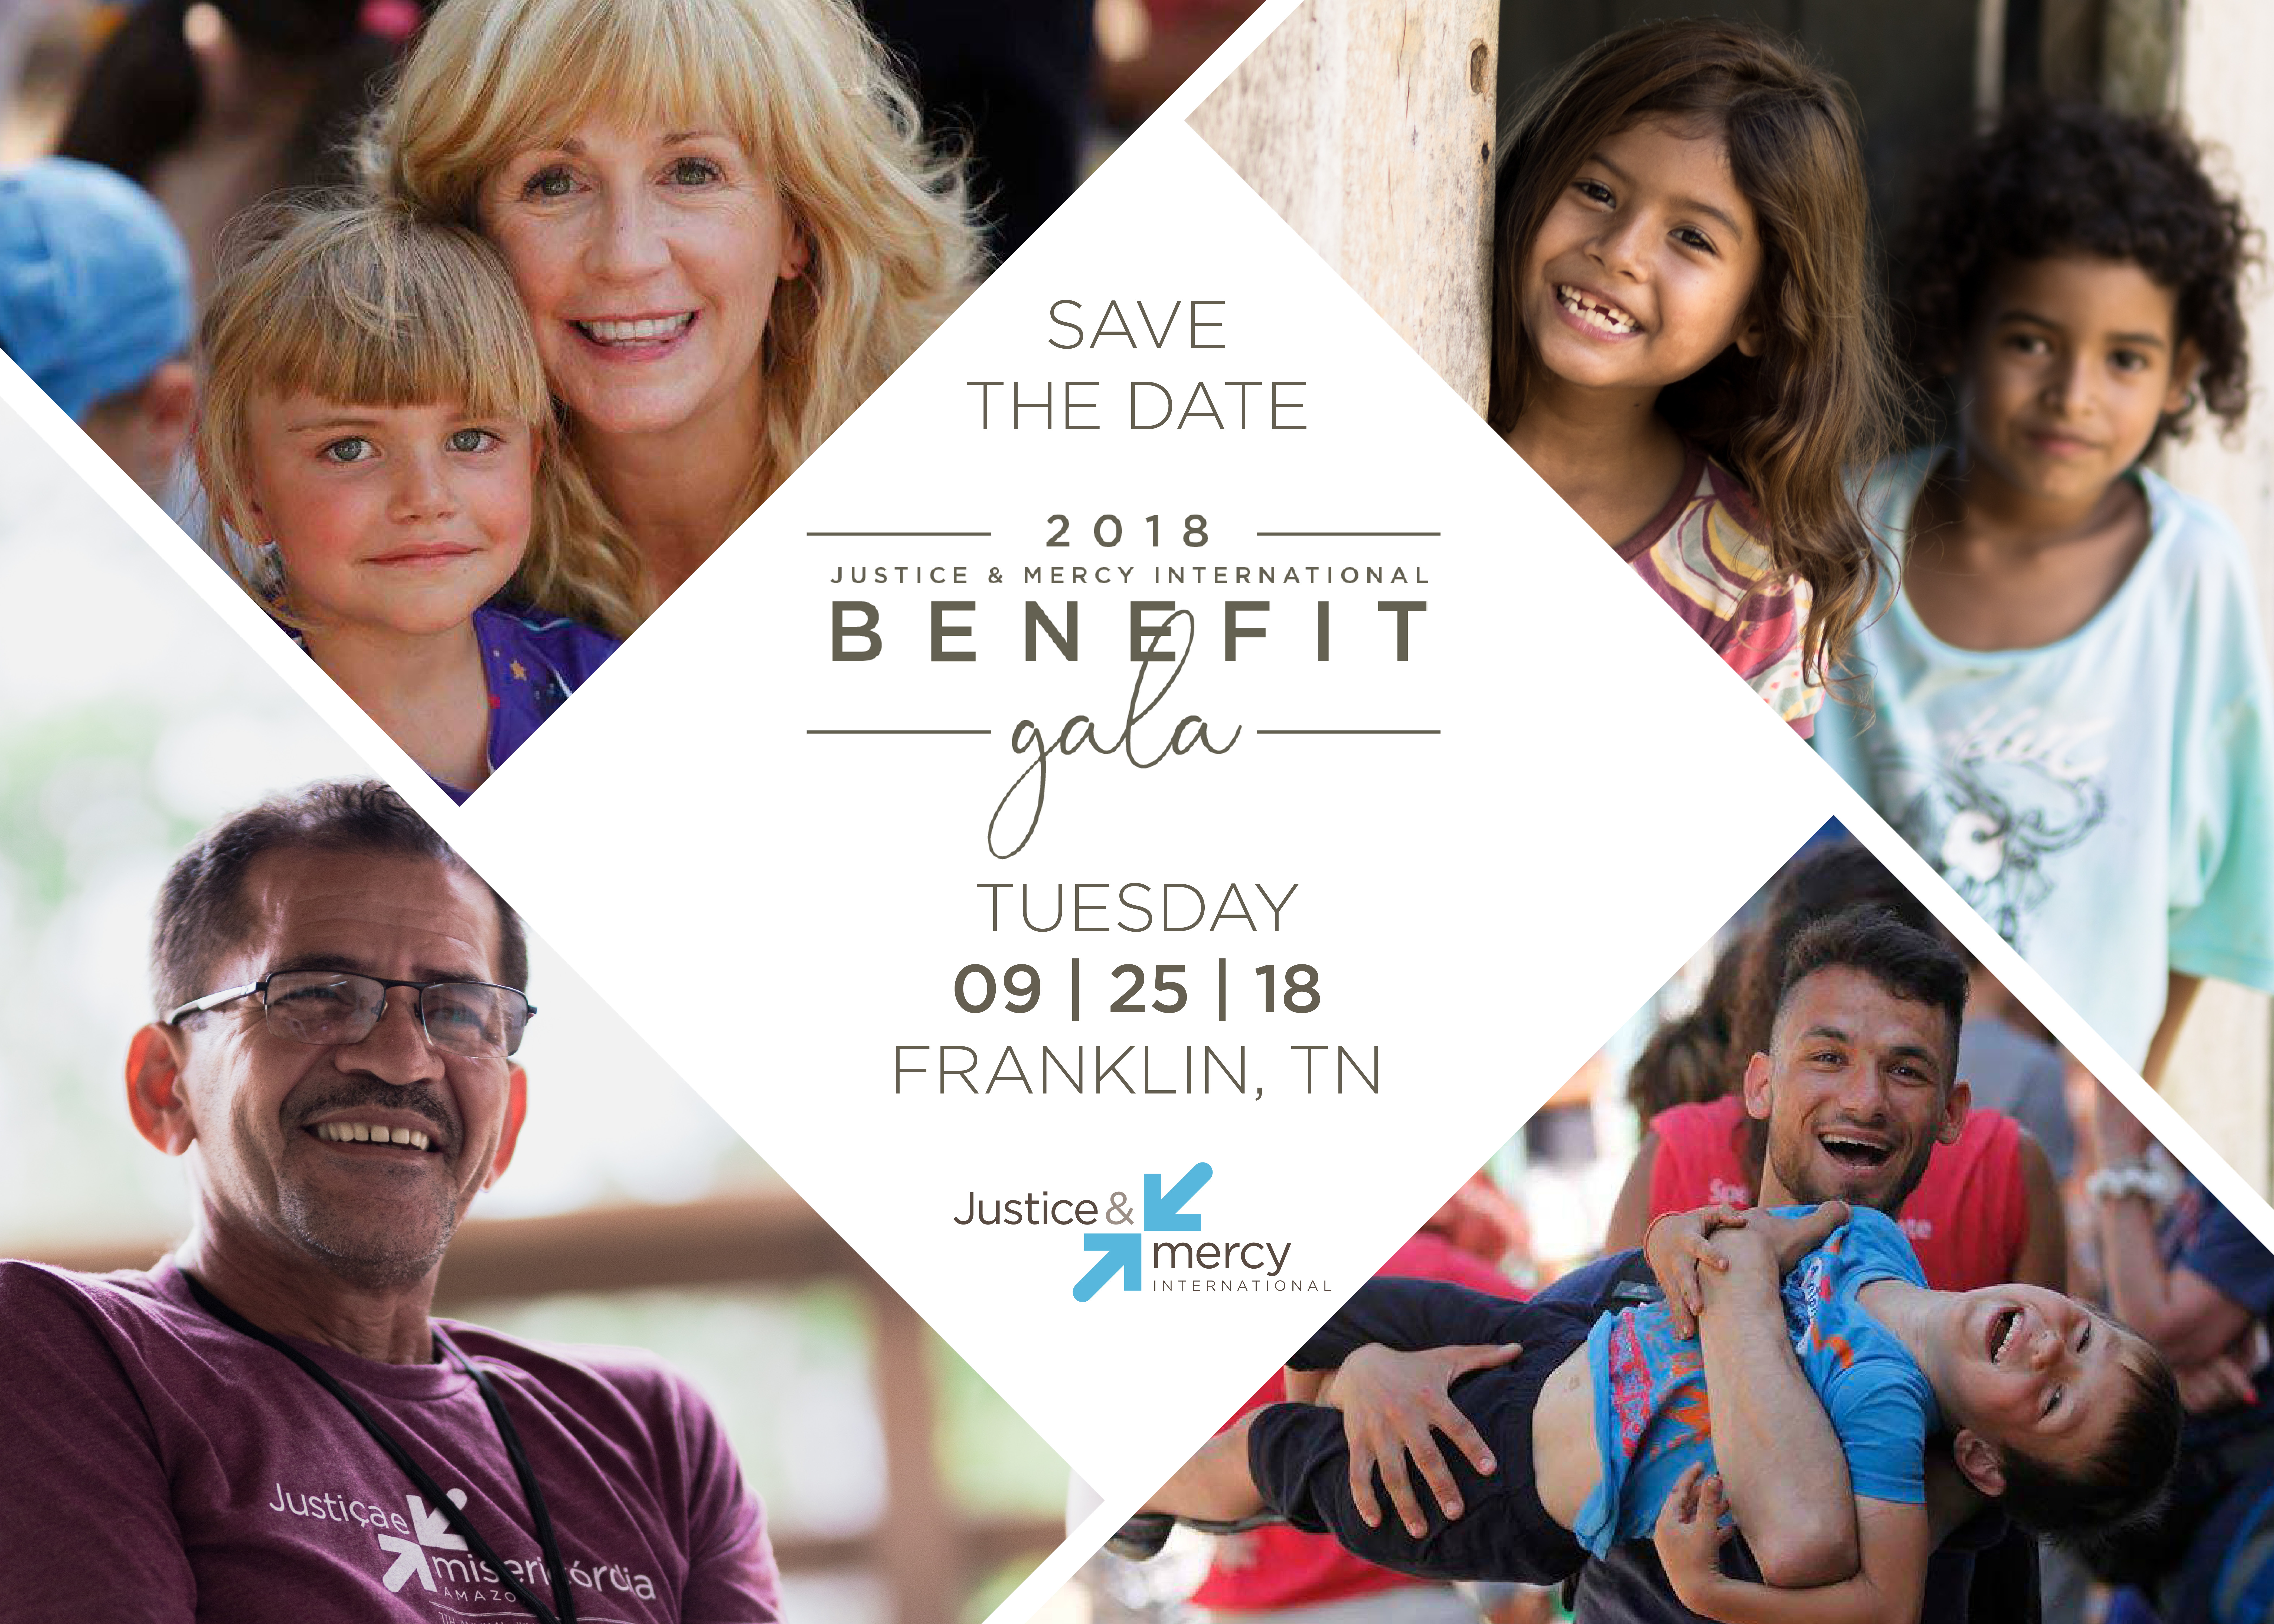 Save the Date - Justice and Mercy International